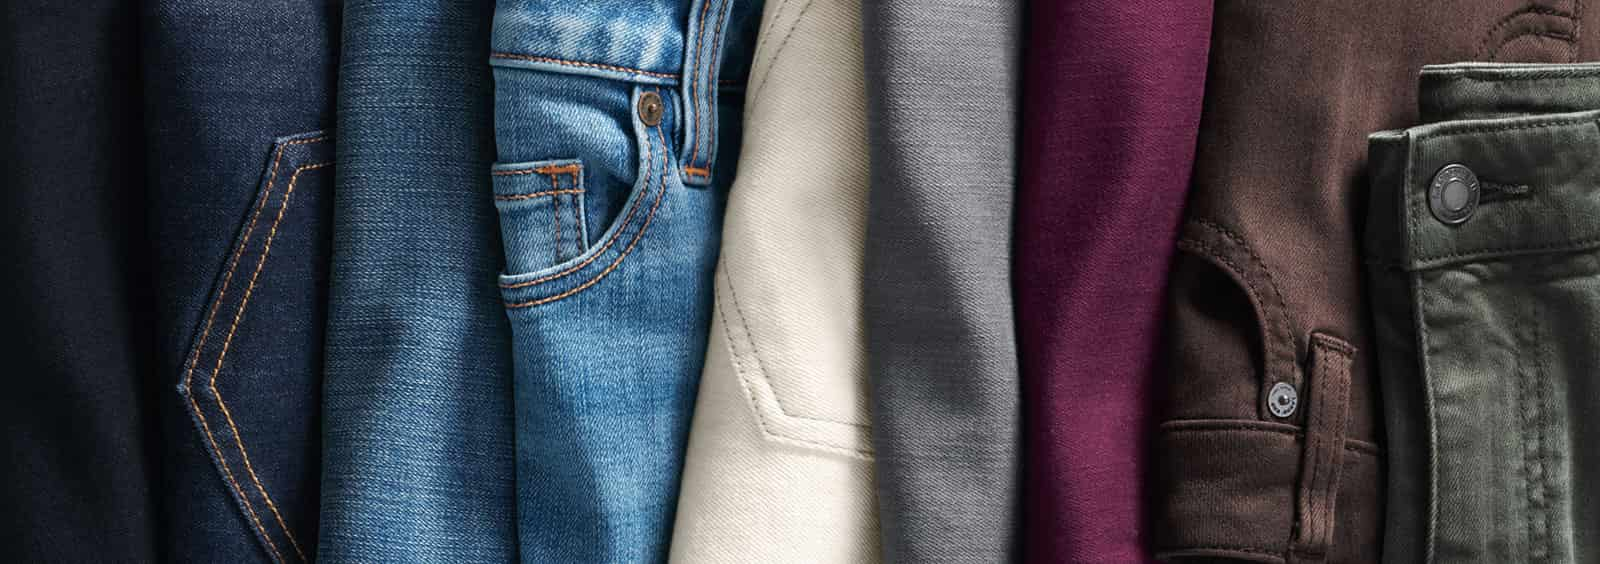 Best Mid-Rise Jeans to Wear On the Go